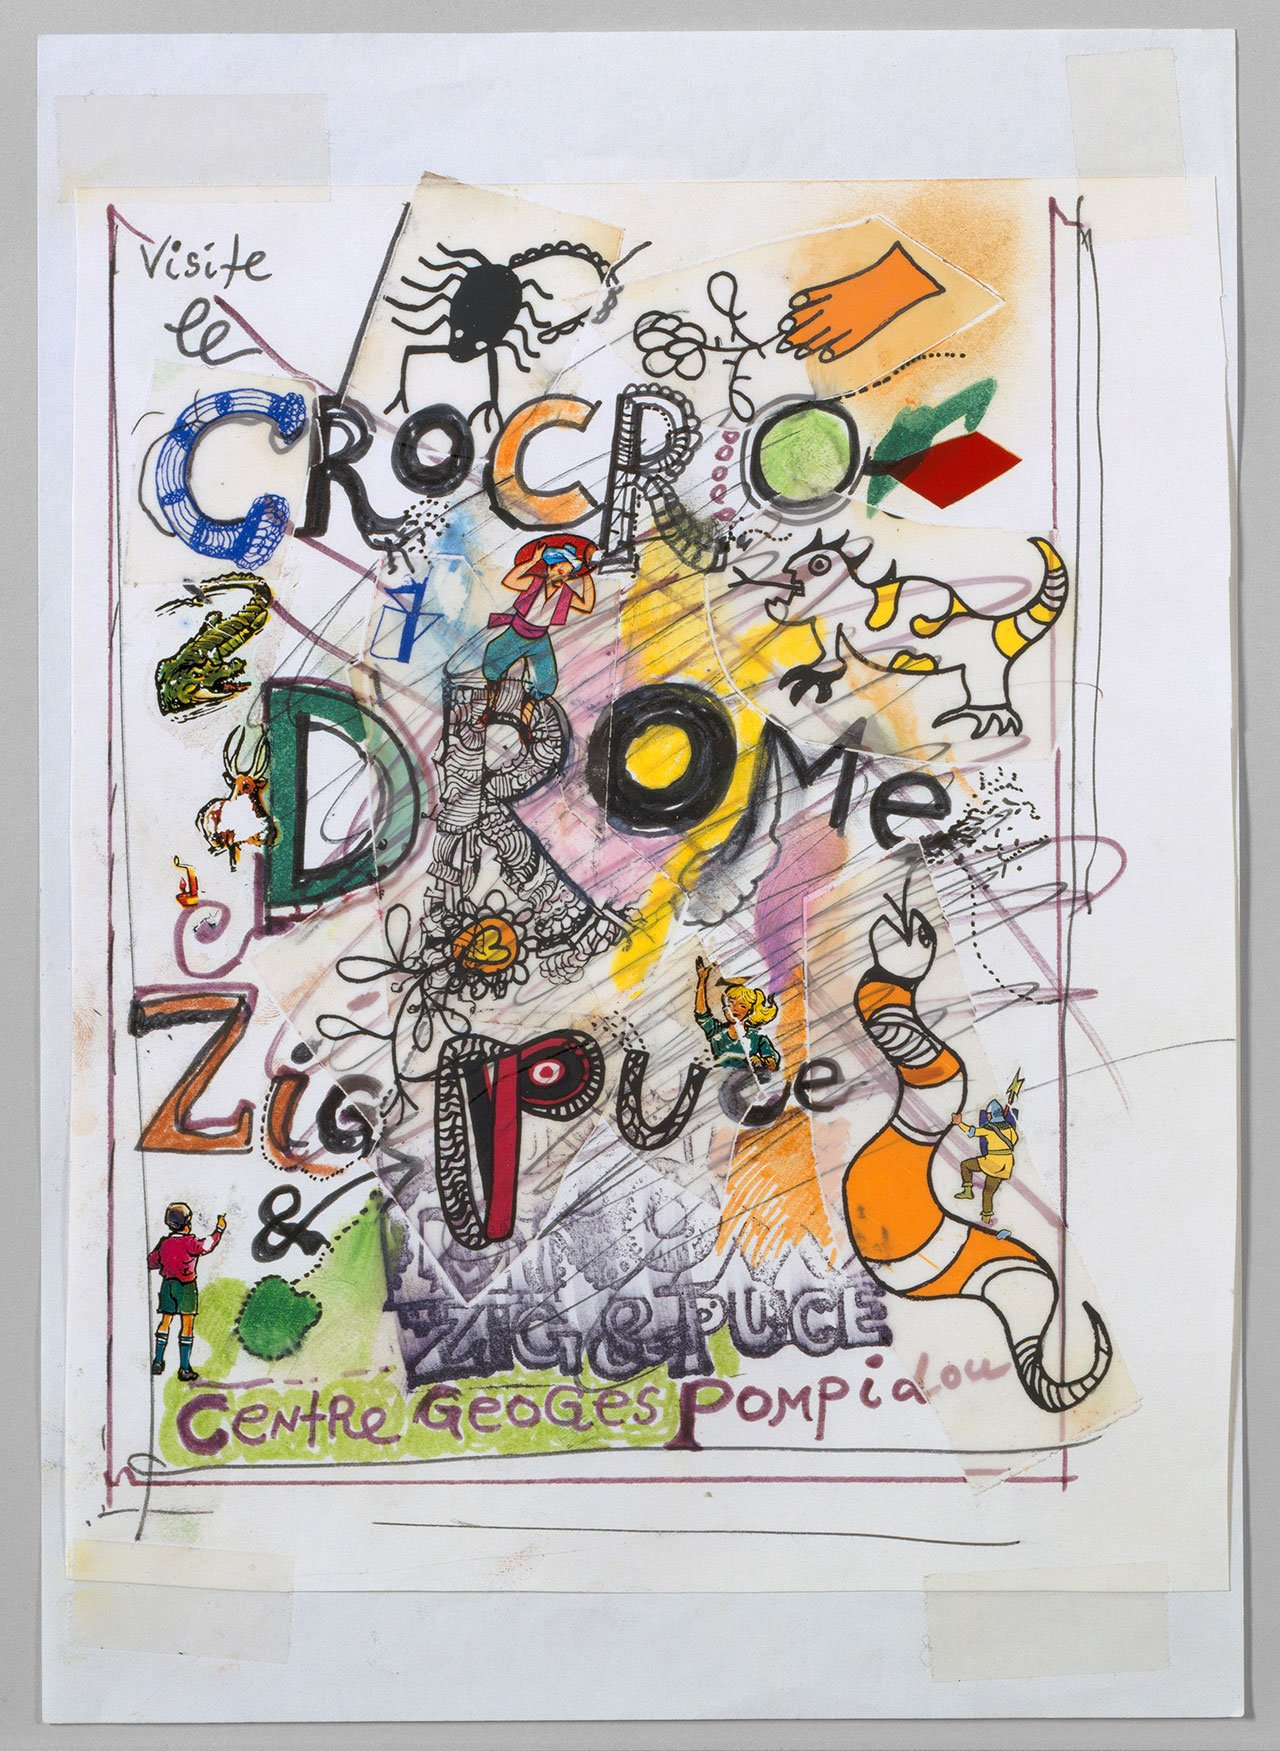 Jean Tinguely, poster design for Visite le Crocrodrome - Zig & Puce, Centre Georges Pompidou, Paris, 1977. Collection Museum Tinguely Basel - a cultural commitment of Roche, c/o Pictoright Amsterdam, 2016.